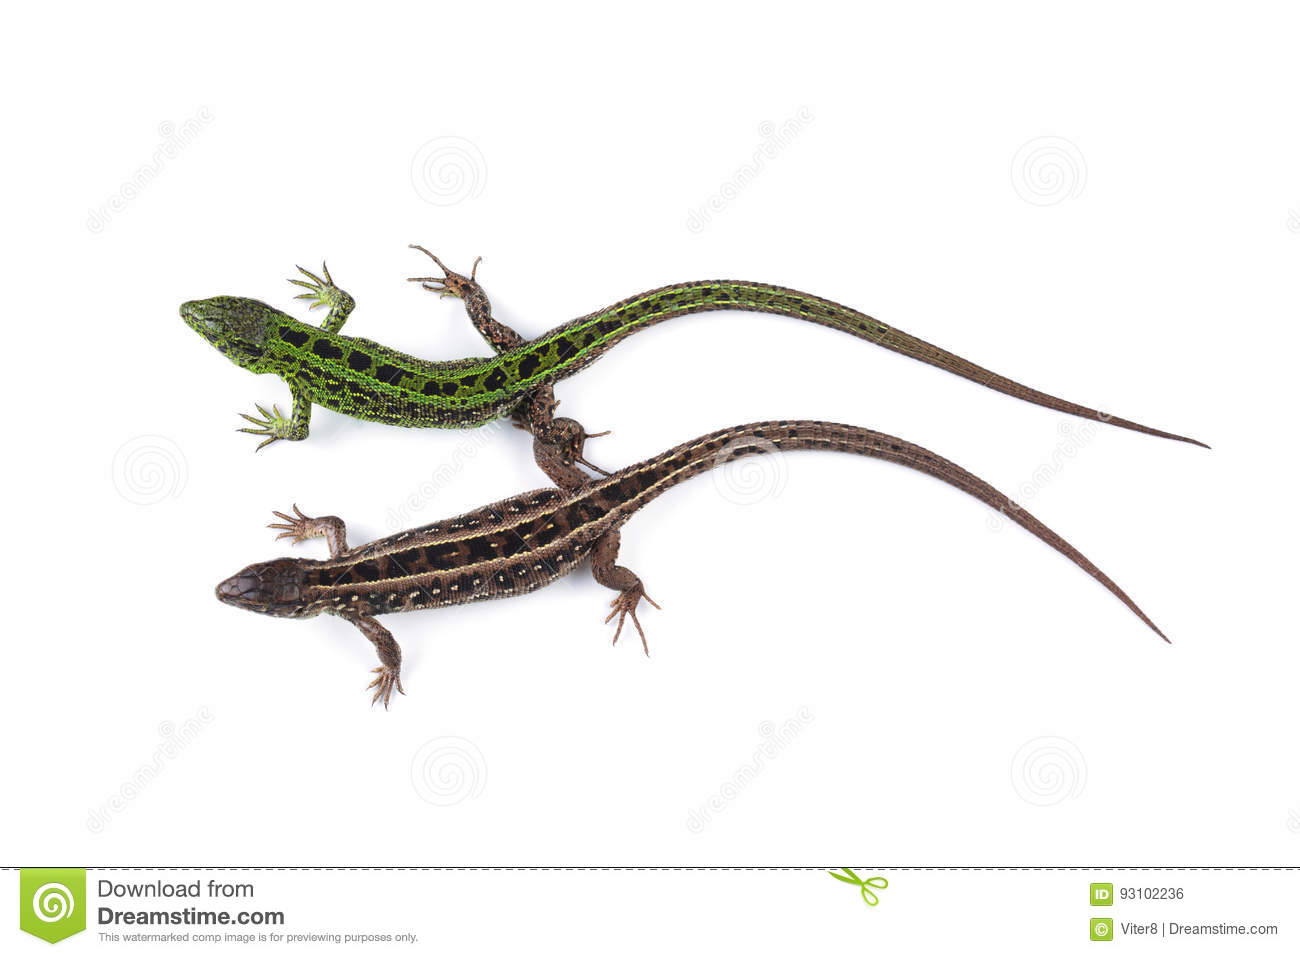 Female and male of sand lizard Lacerta agilis isolated on whit